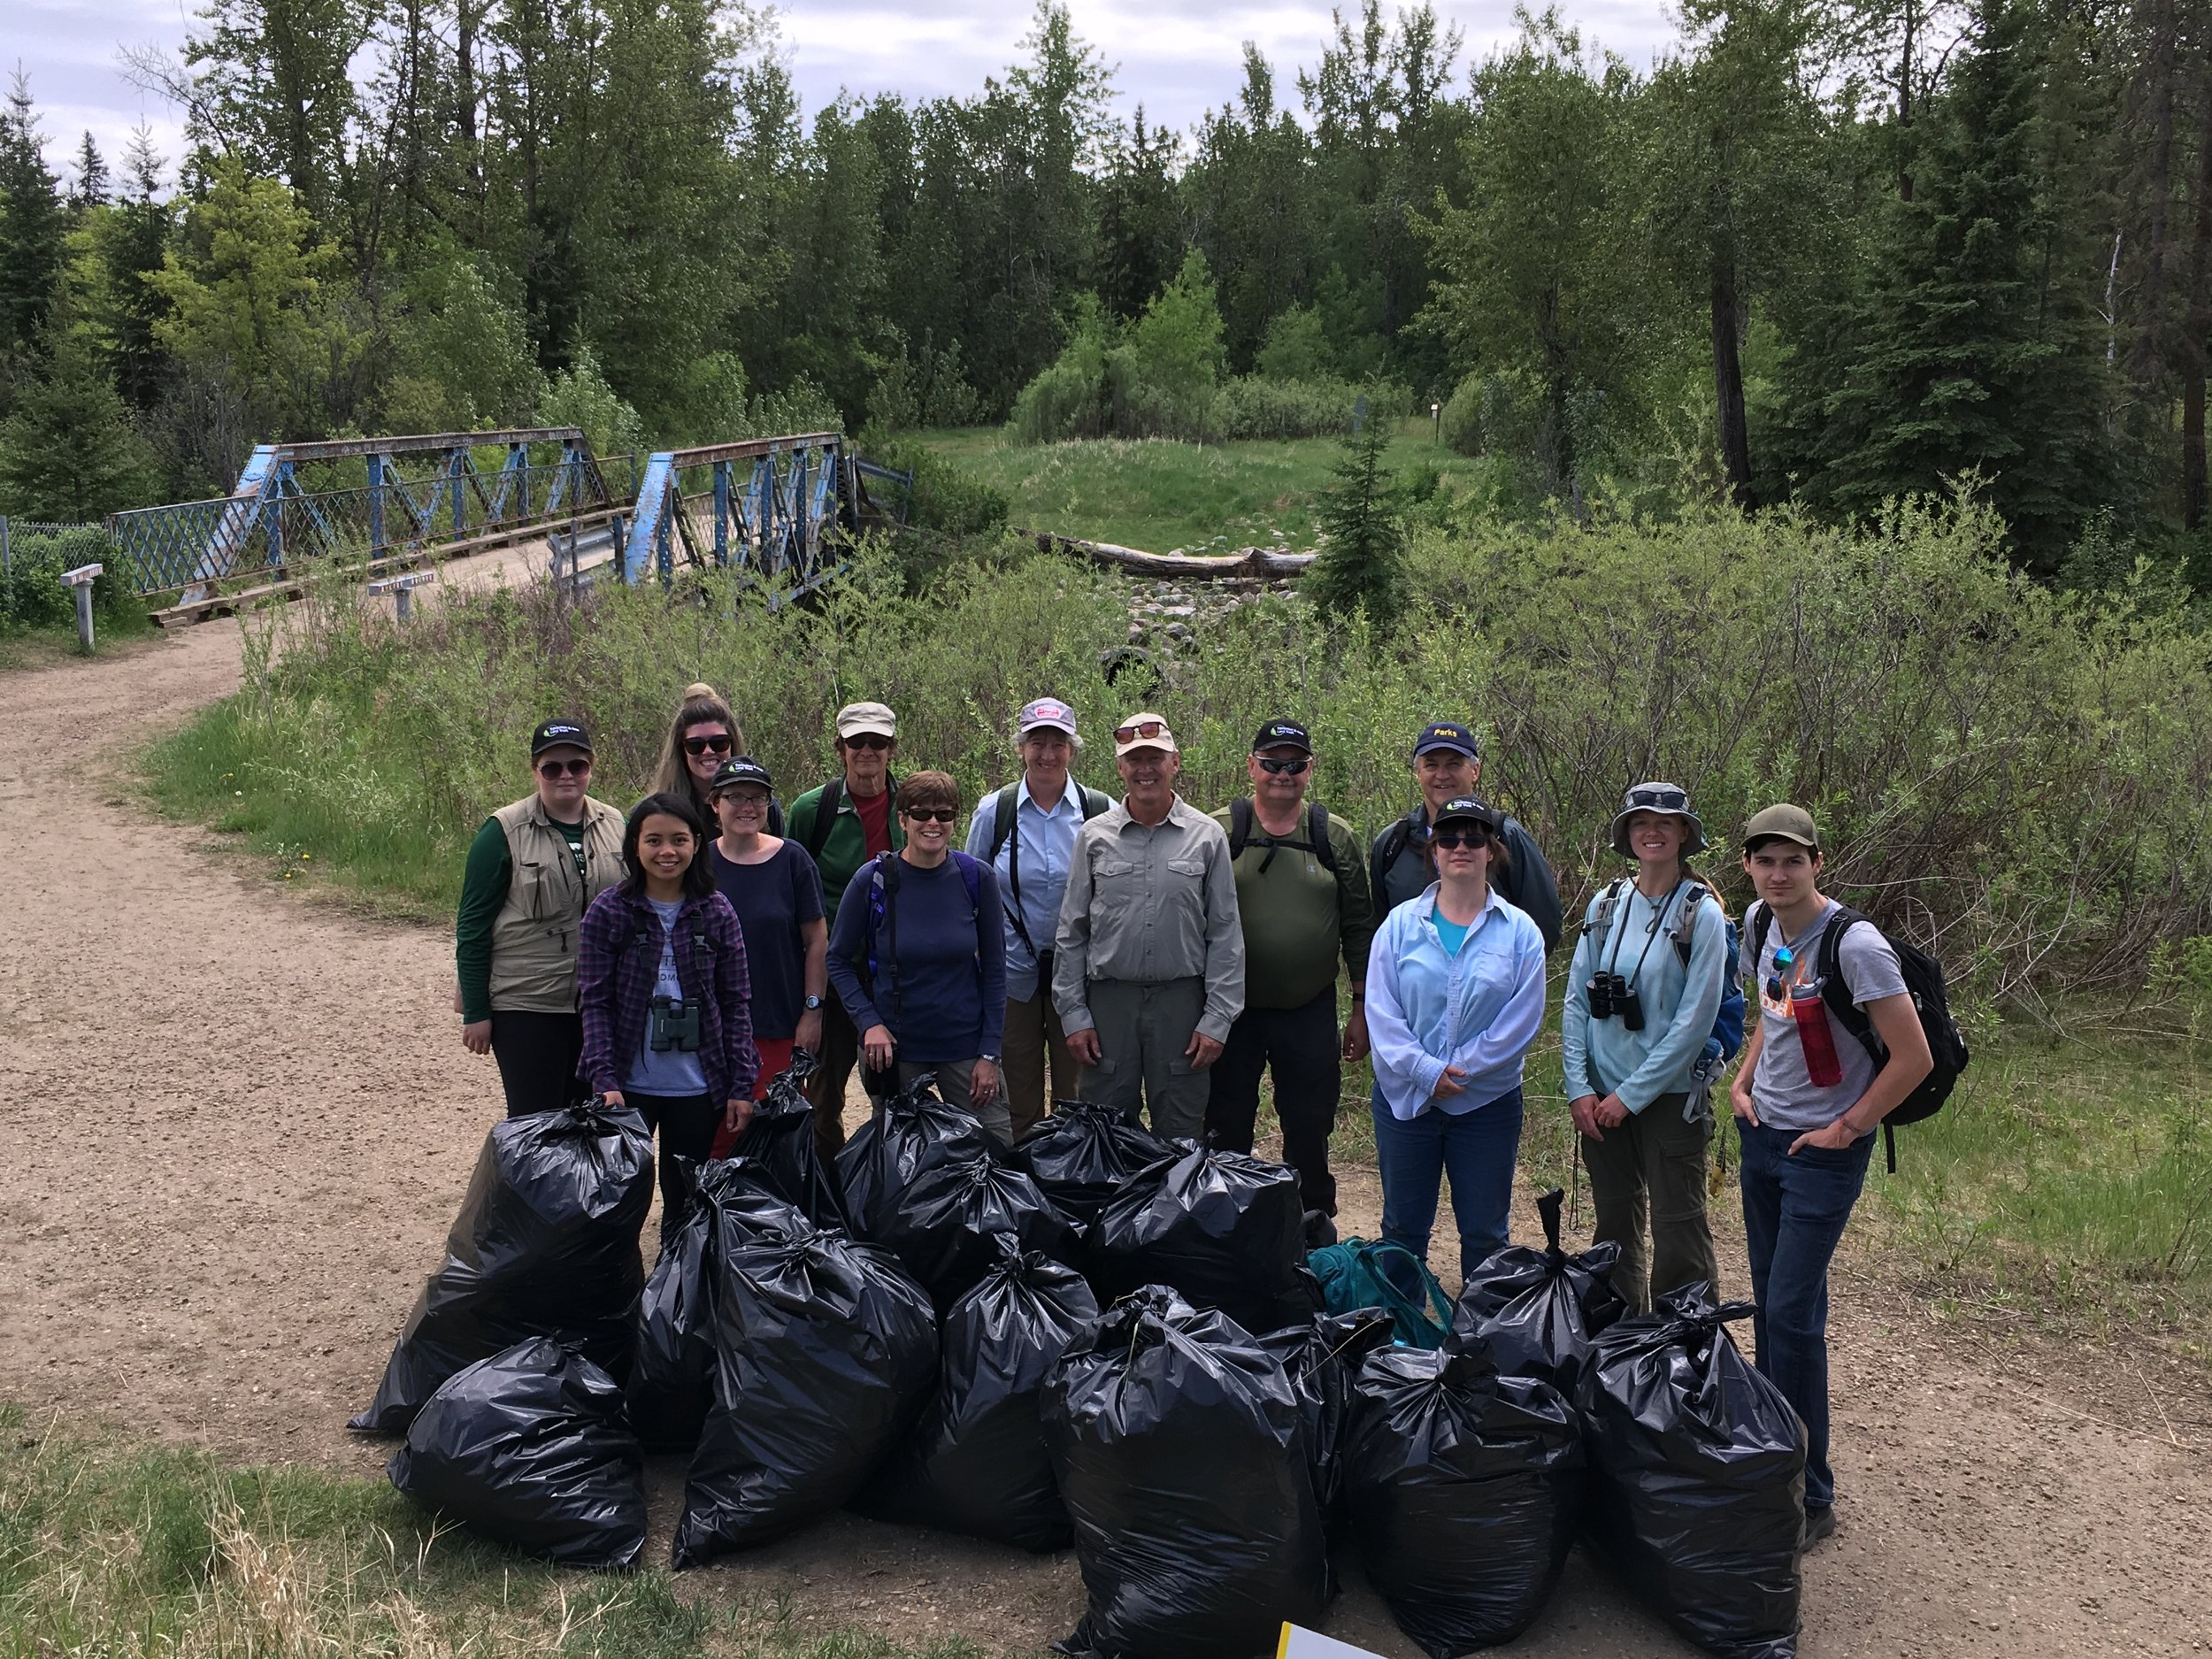 Volunteers remove 15 bags of invasive Leafy Spurge from Larch Sanctuary